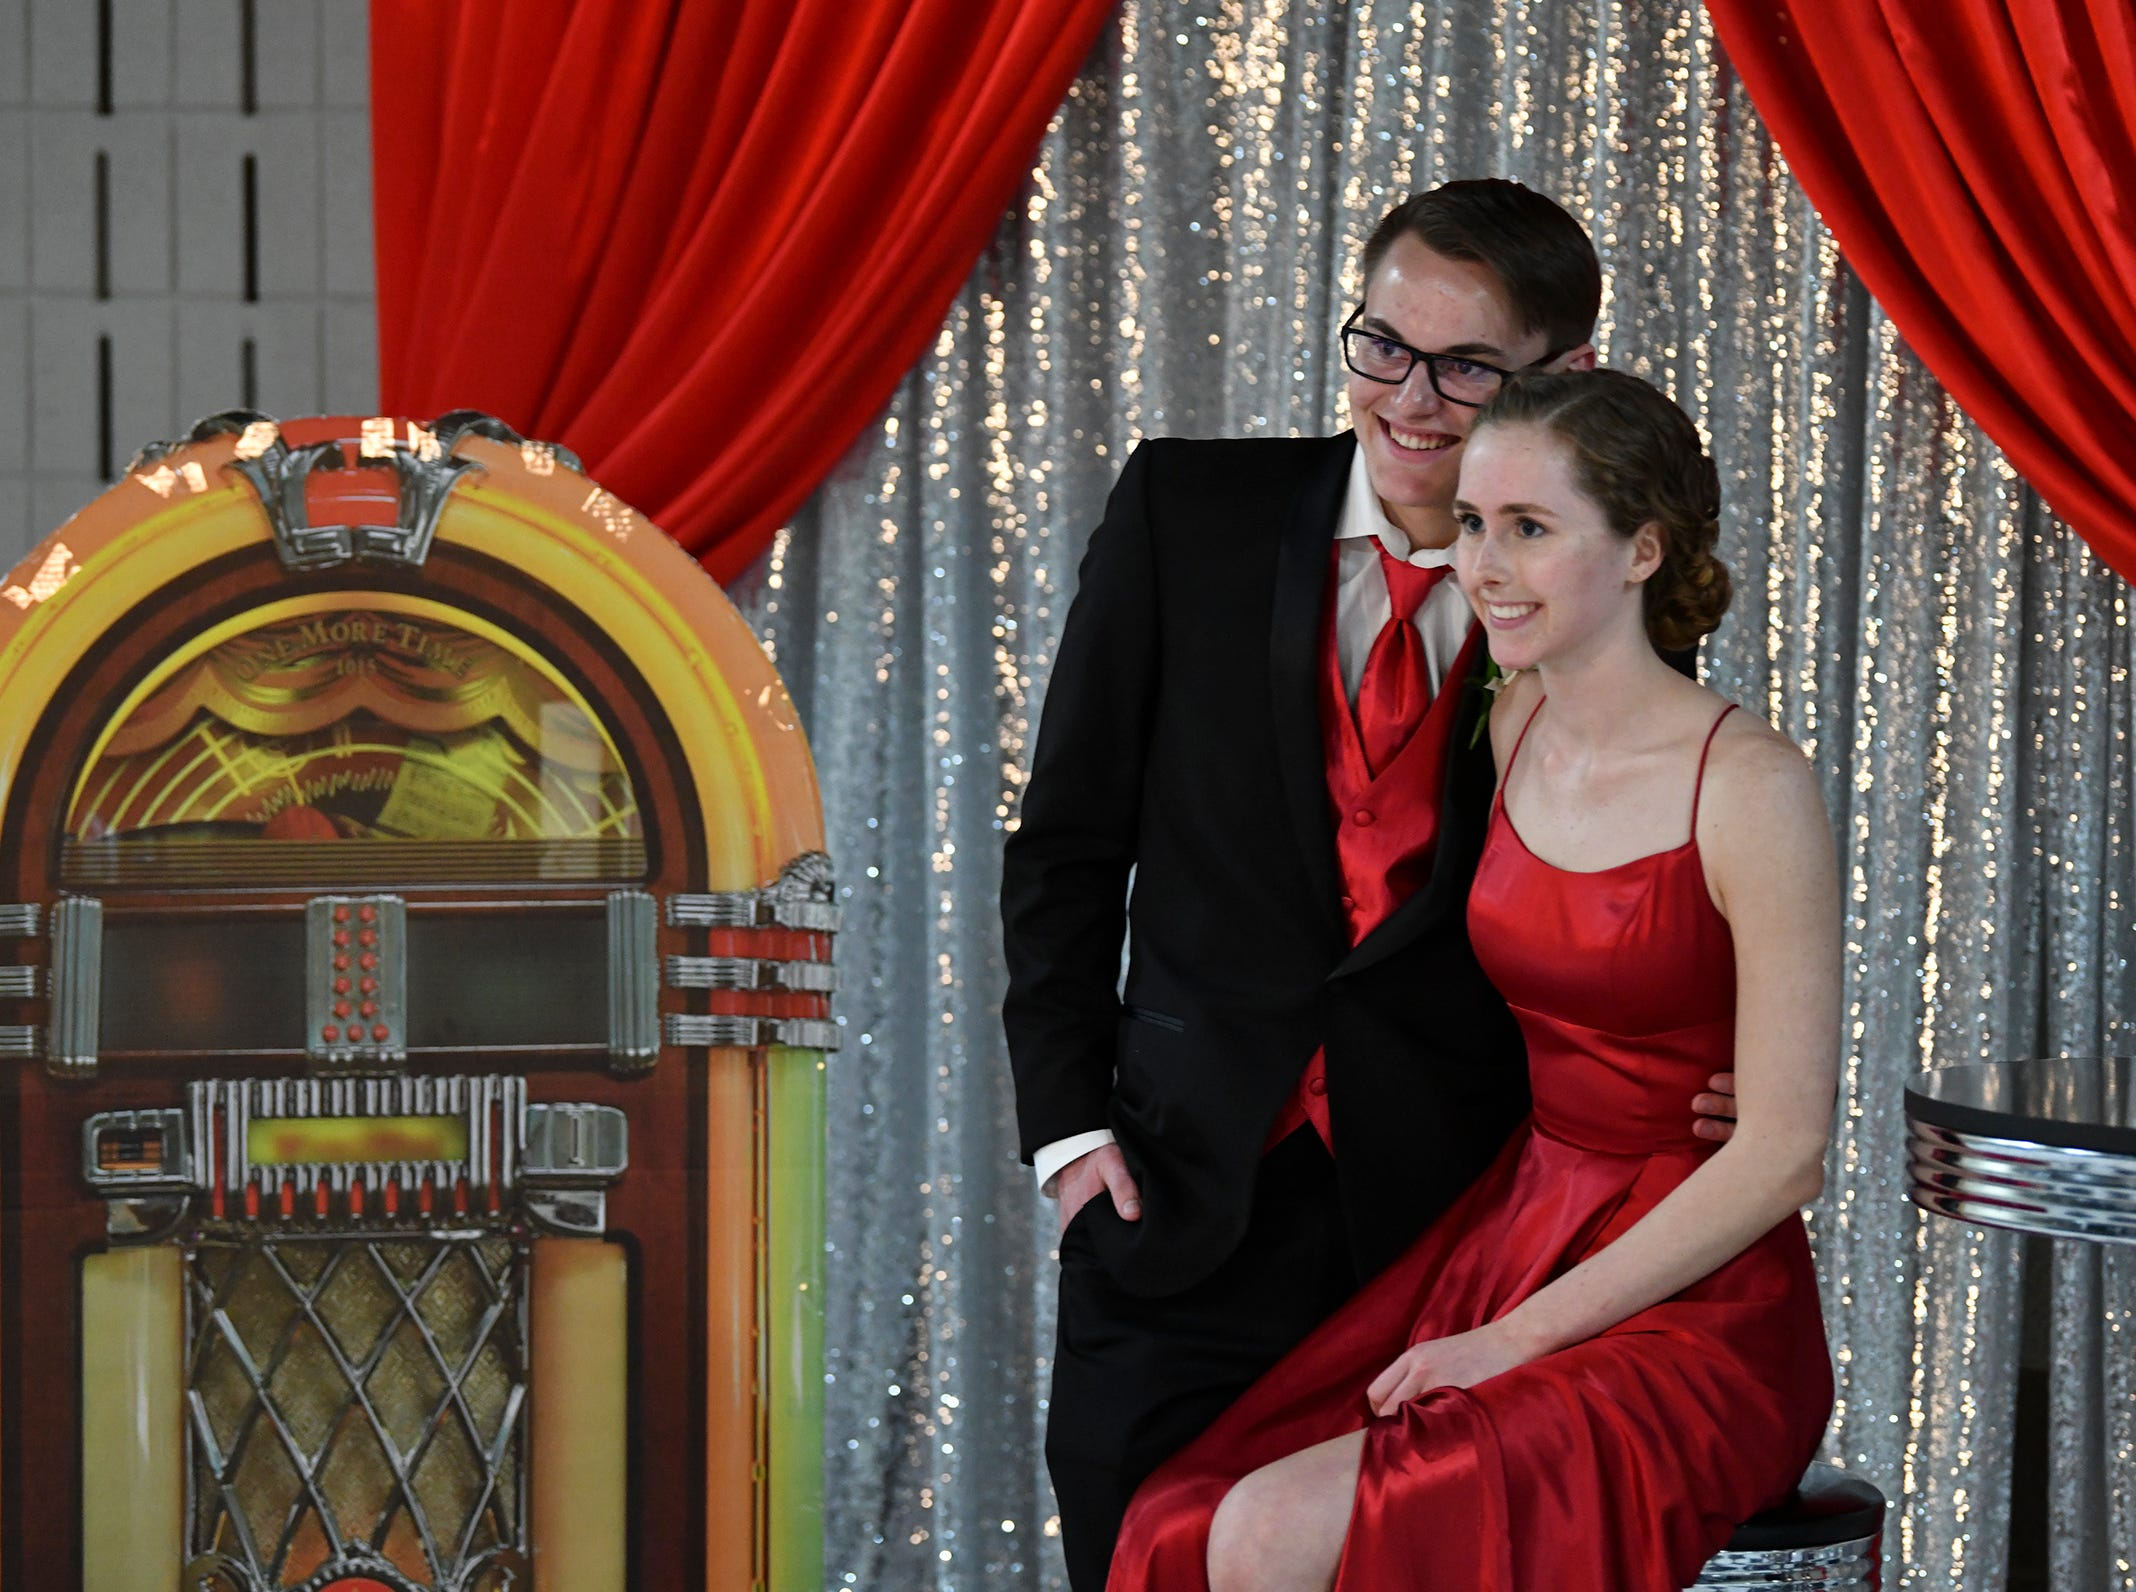 Students pose for a photo during Sartell High School prom Saturday, May 4, in St. Cloud.